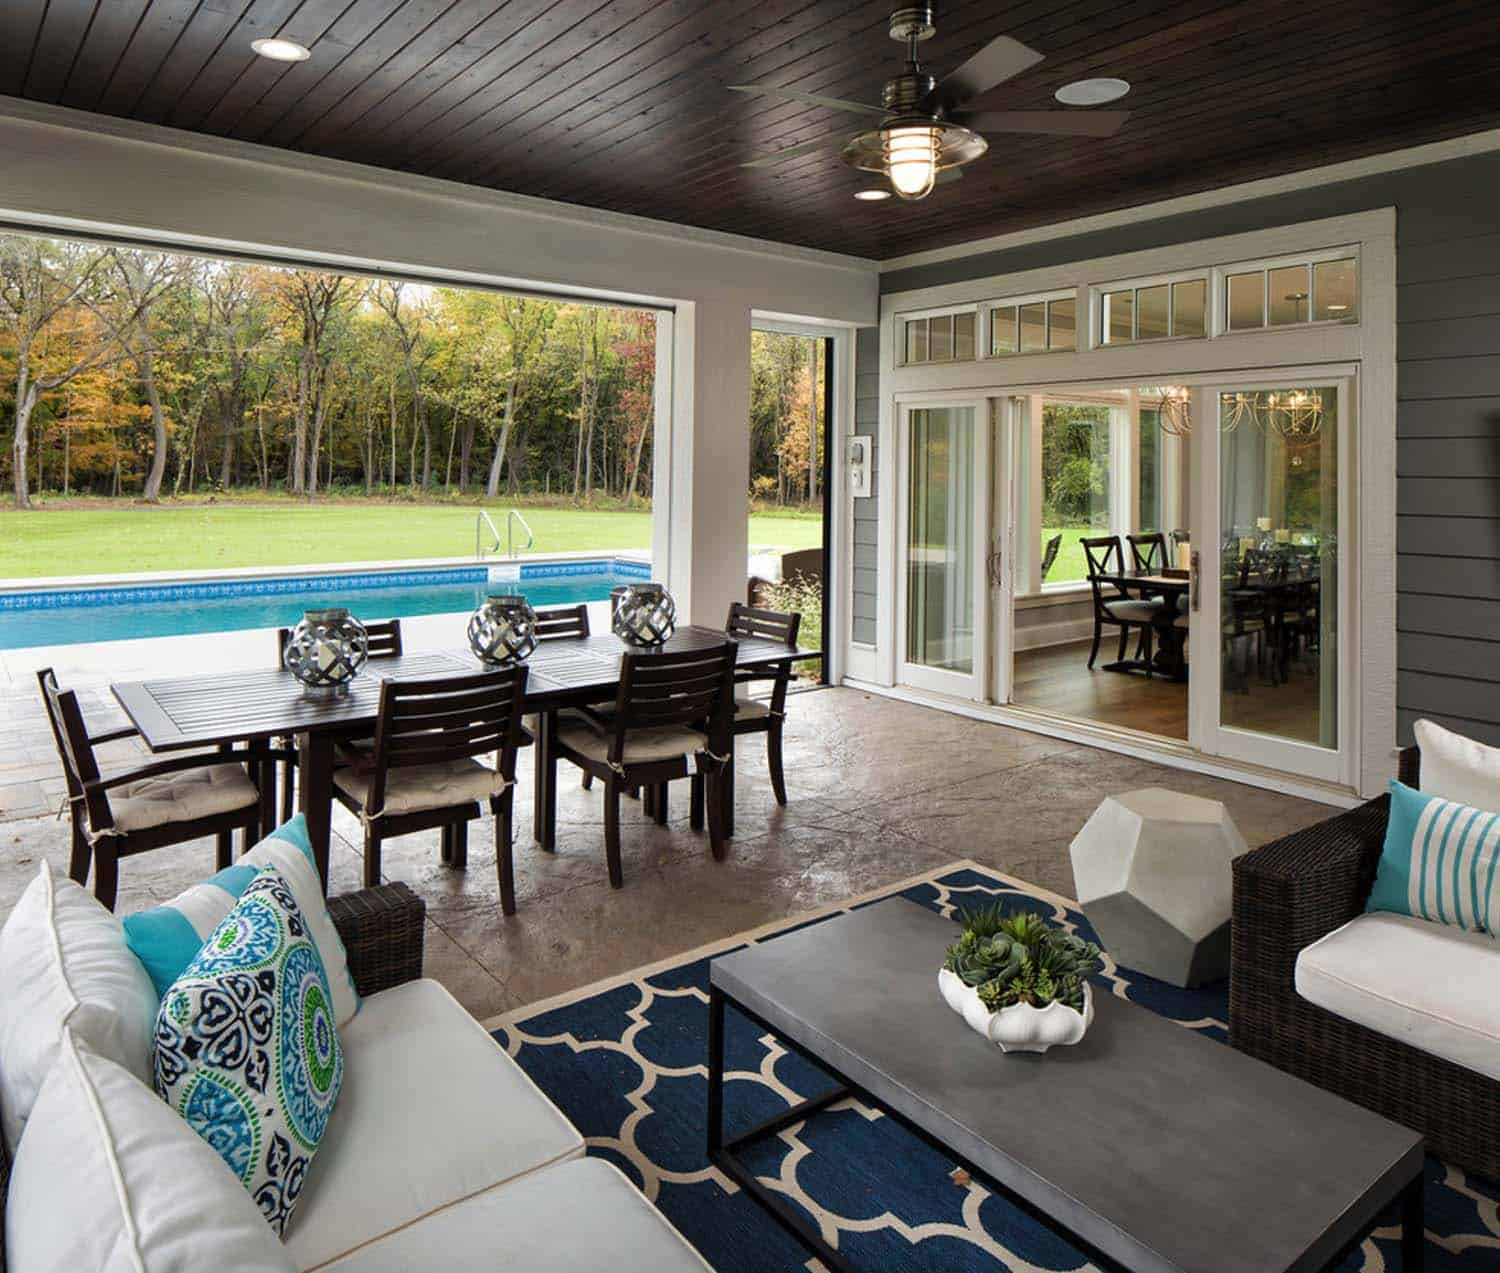 Backyard Porch Ideas: 38 Amazingly Cozy And Relaxing Screened Porch Design Ideas